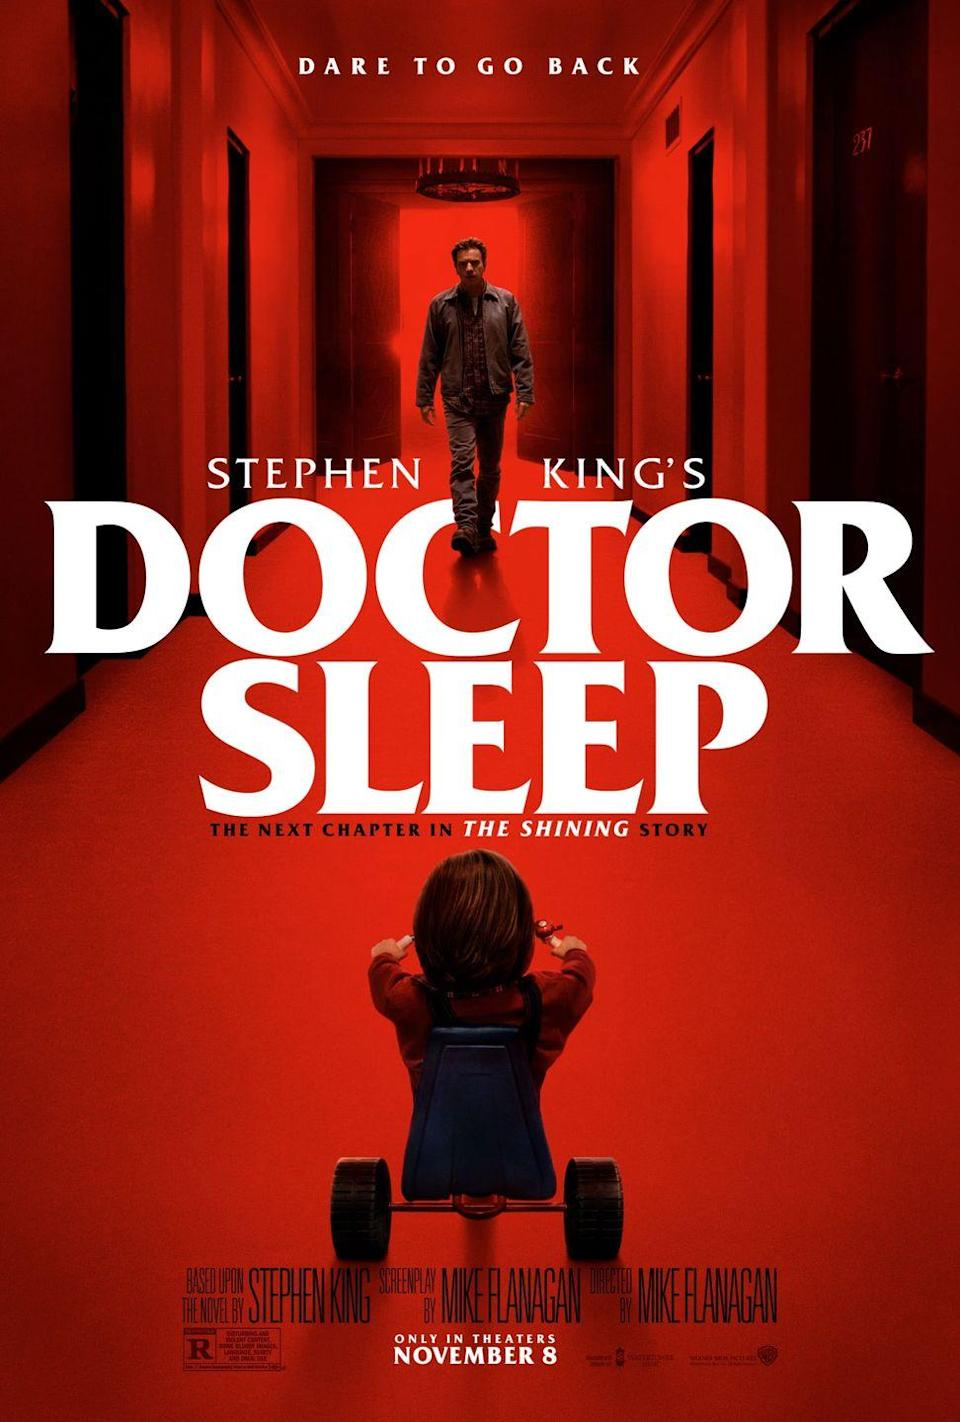 """<p>You won't be able to catch any z's after watching <em>Doctor Sleep. </em>A struggling alcoholic forms an alliance with a teen who shares his extrasensory gift in the sequel to Stephen King's The Shining.""""</p>"""